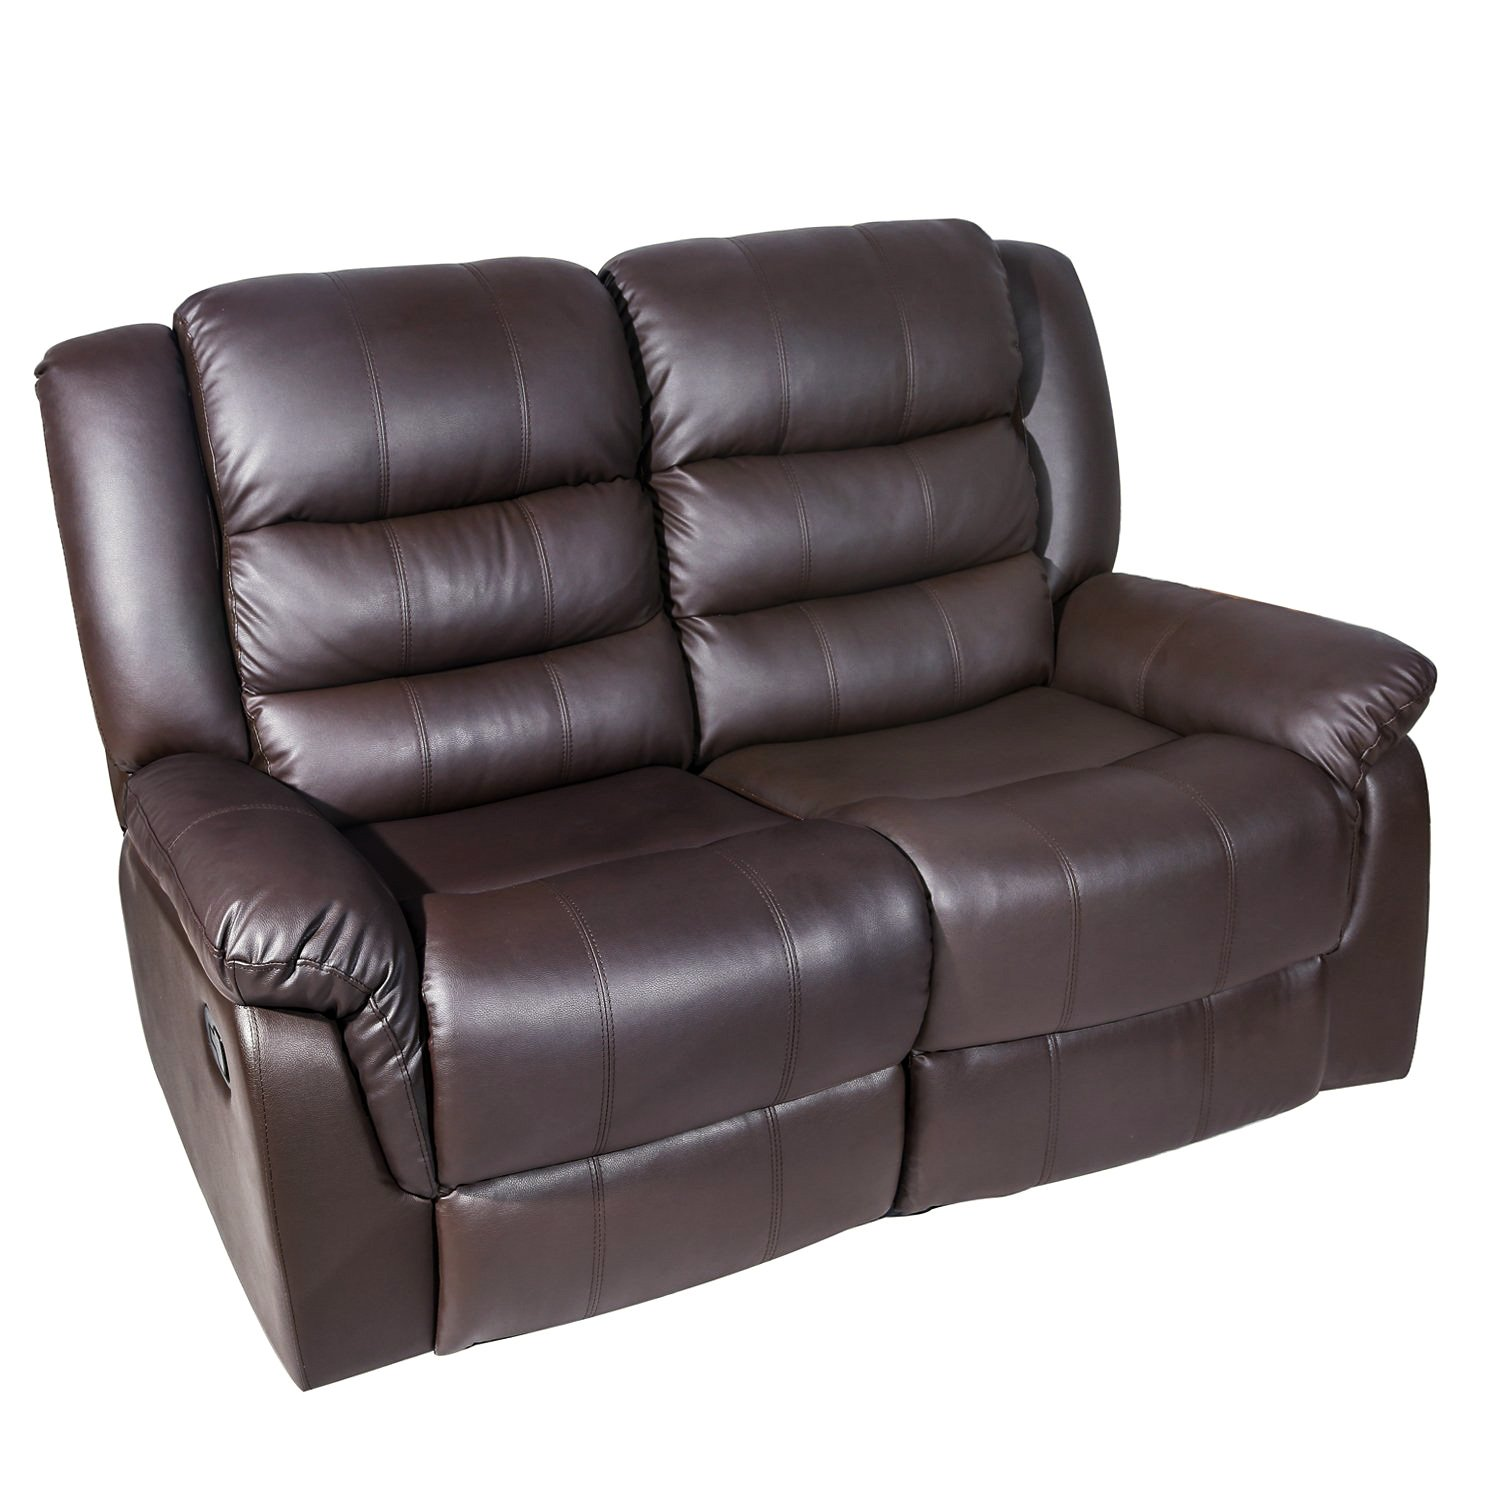 Super Cheap Repair Bonded Leather Find Repair Bonded Leather Pdpeps Interior Chair Design Pdpepsorg